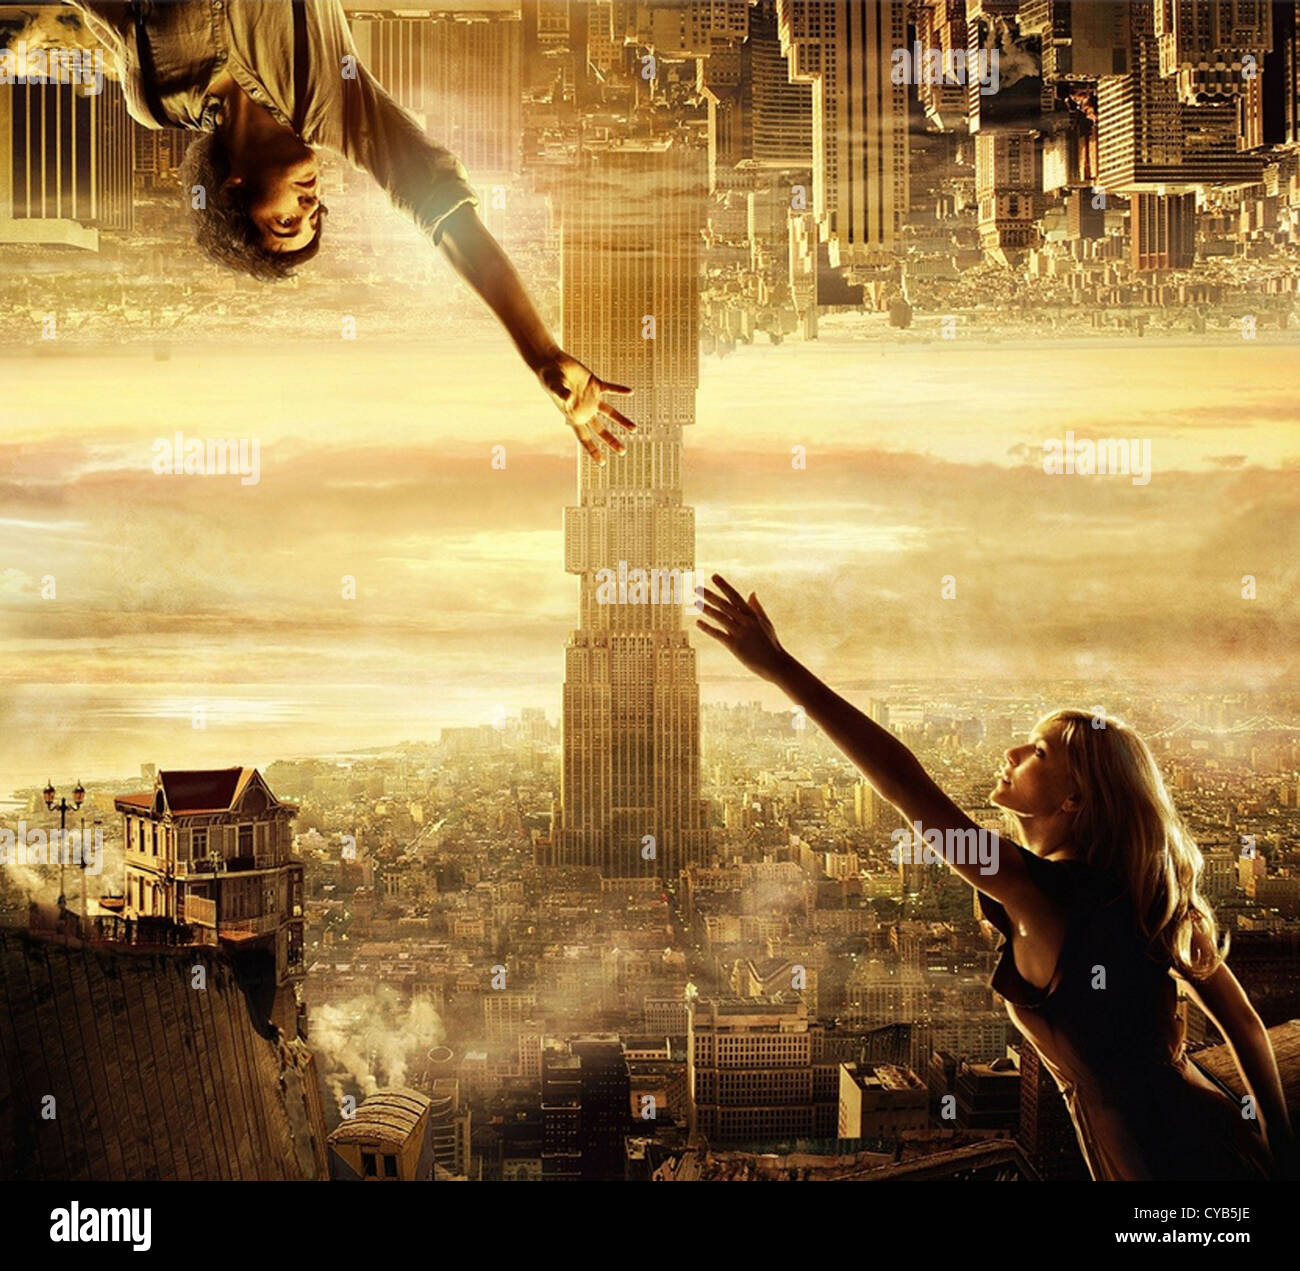 UPSIDE DOWN 2012 Millenium Entertainment film with Kirsten Dunst as Eden and Jim Sturgess as Adam - Stock Image